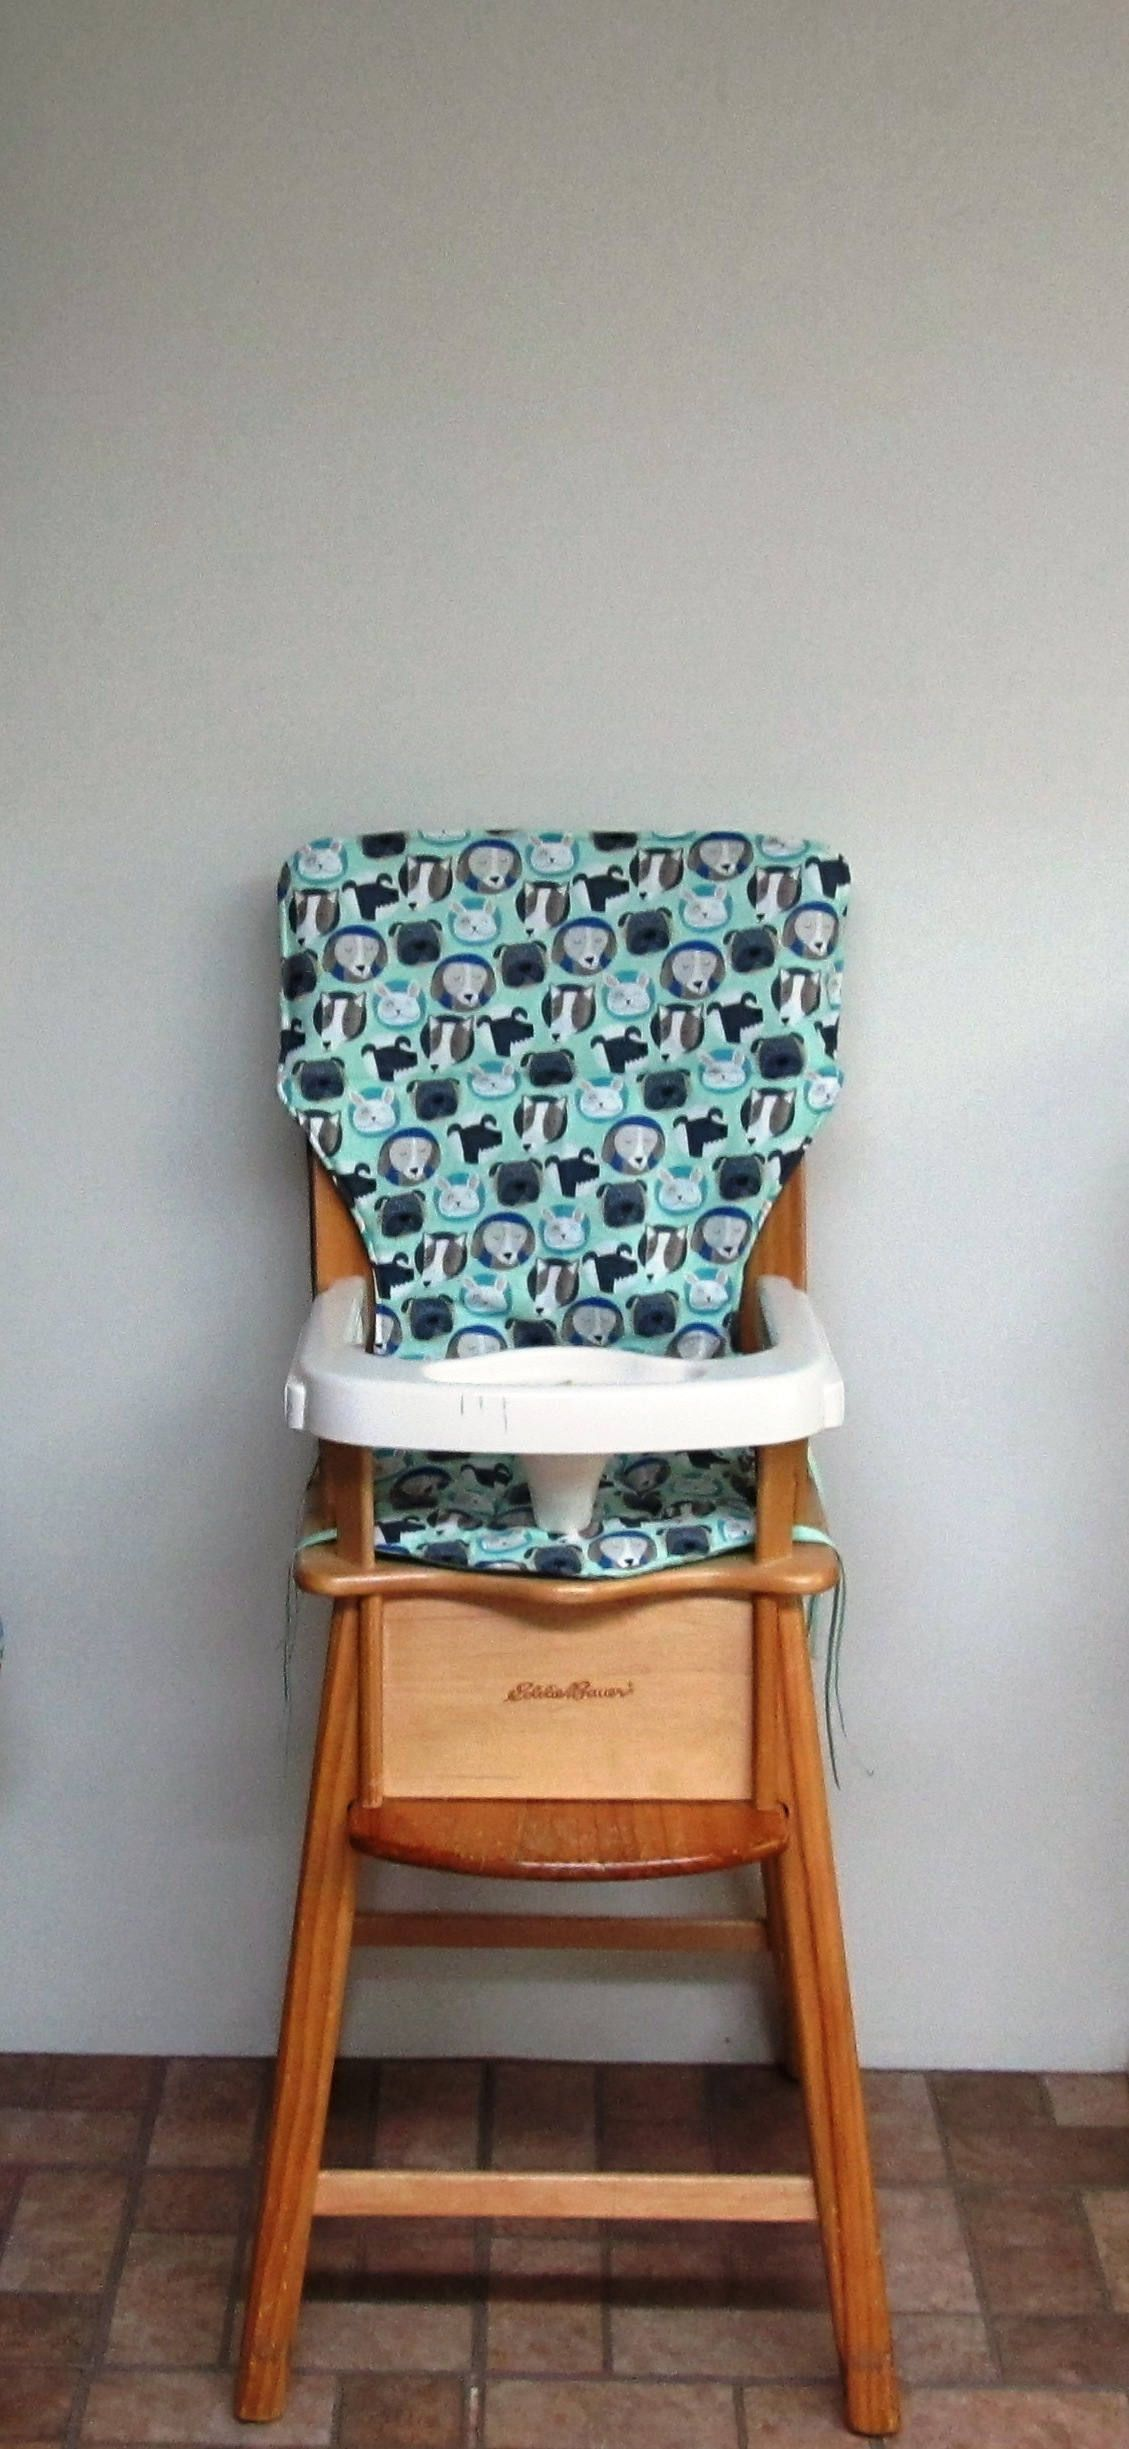 Eddie Bauer Chair Pad High Chair Cover Jenny Lind Chair Cover